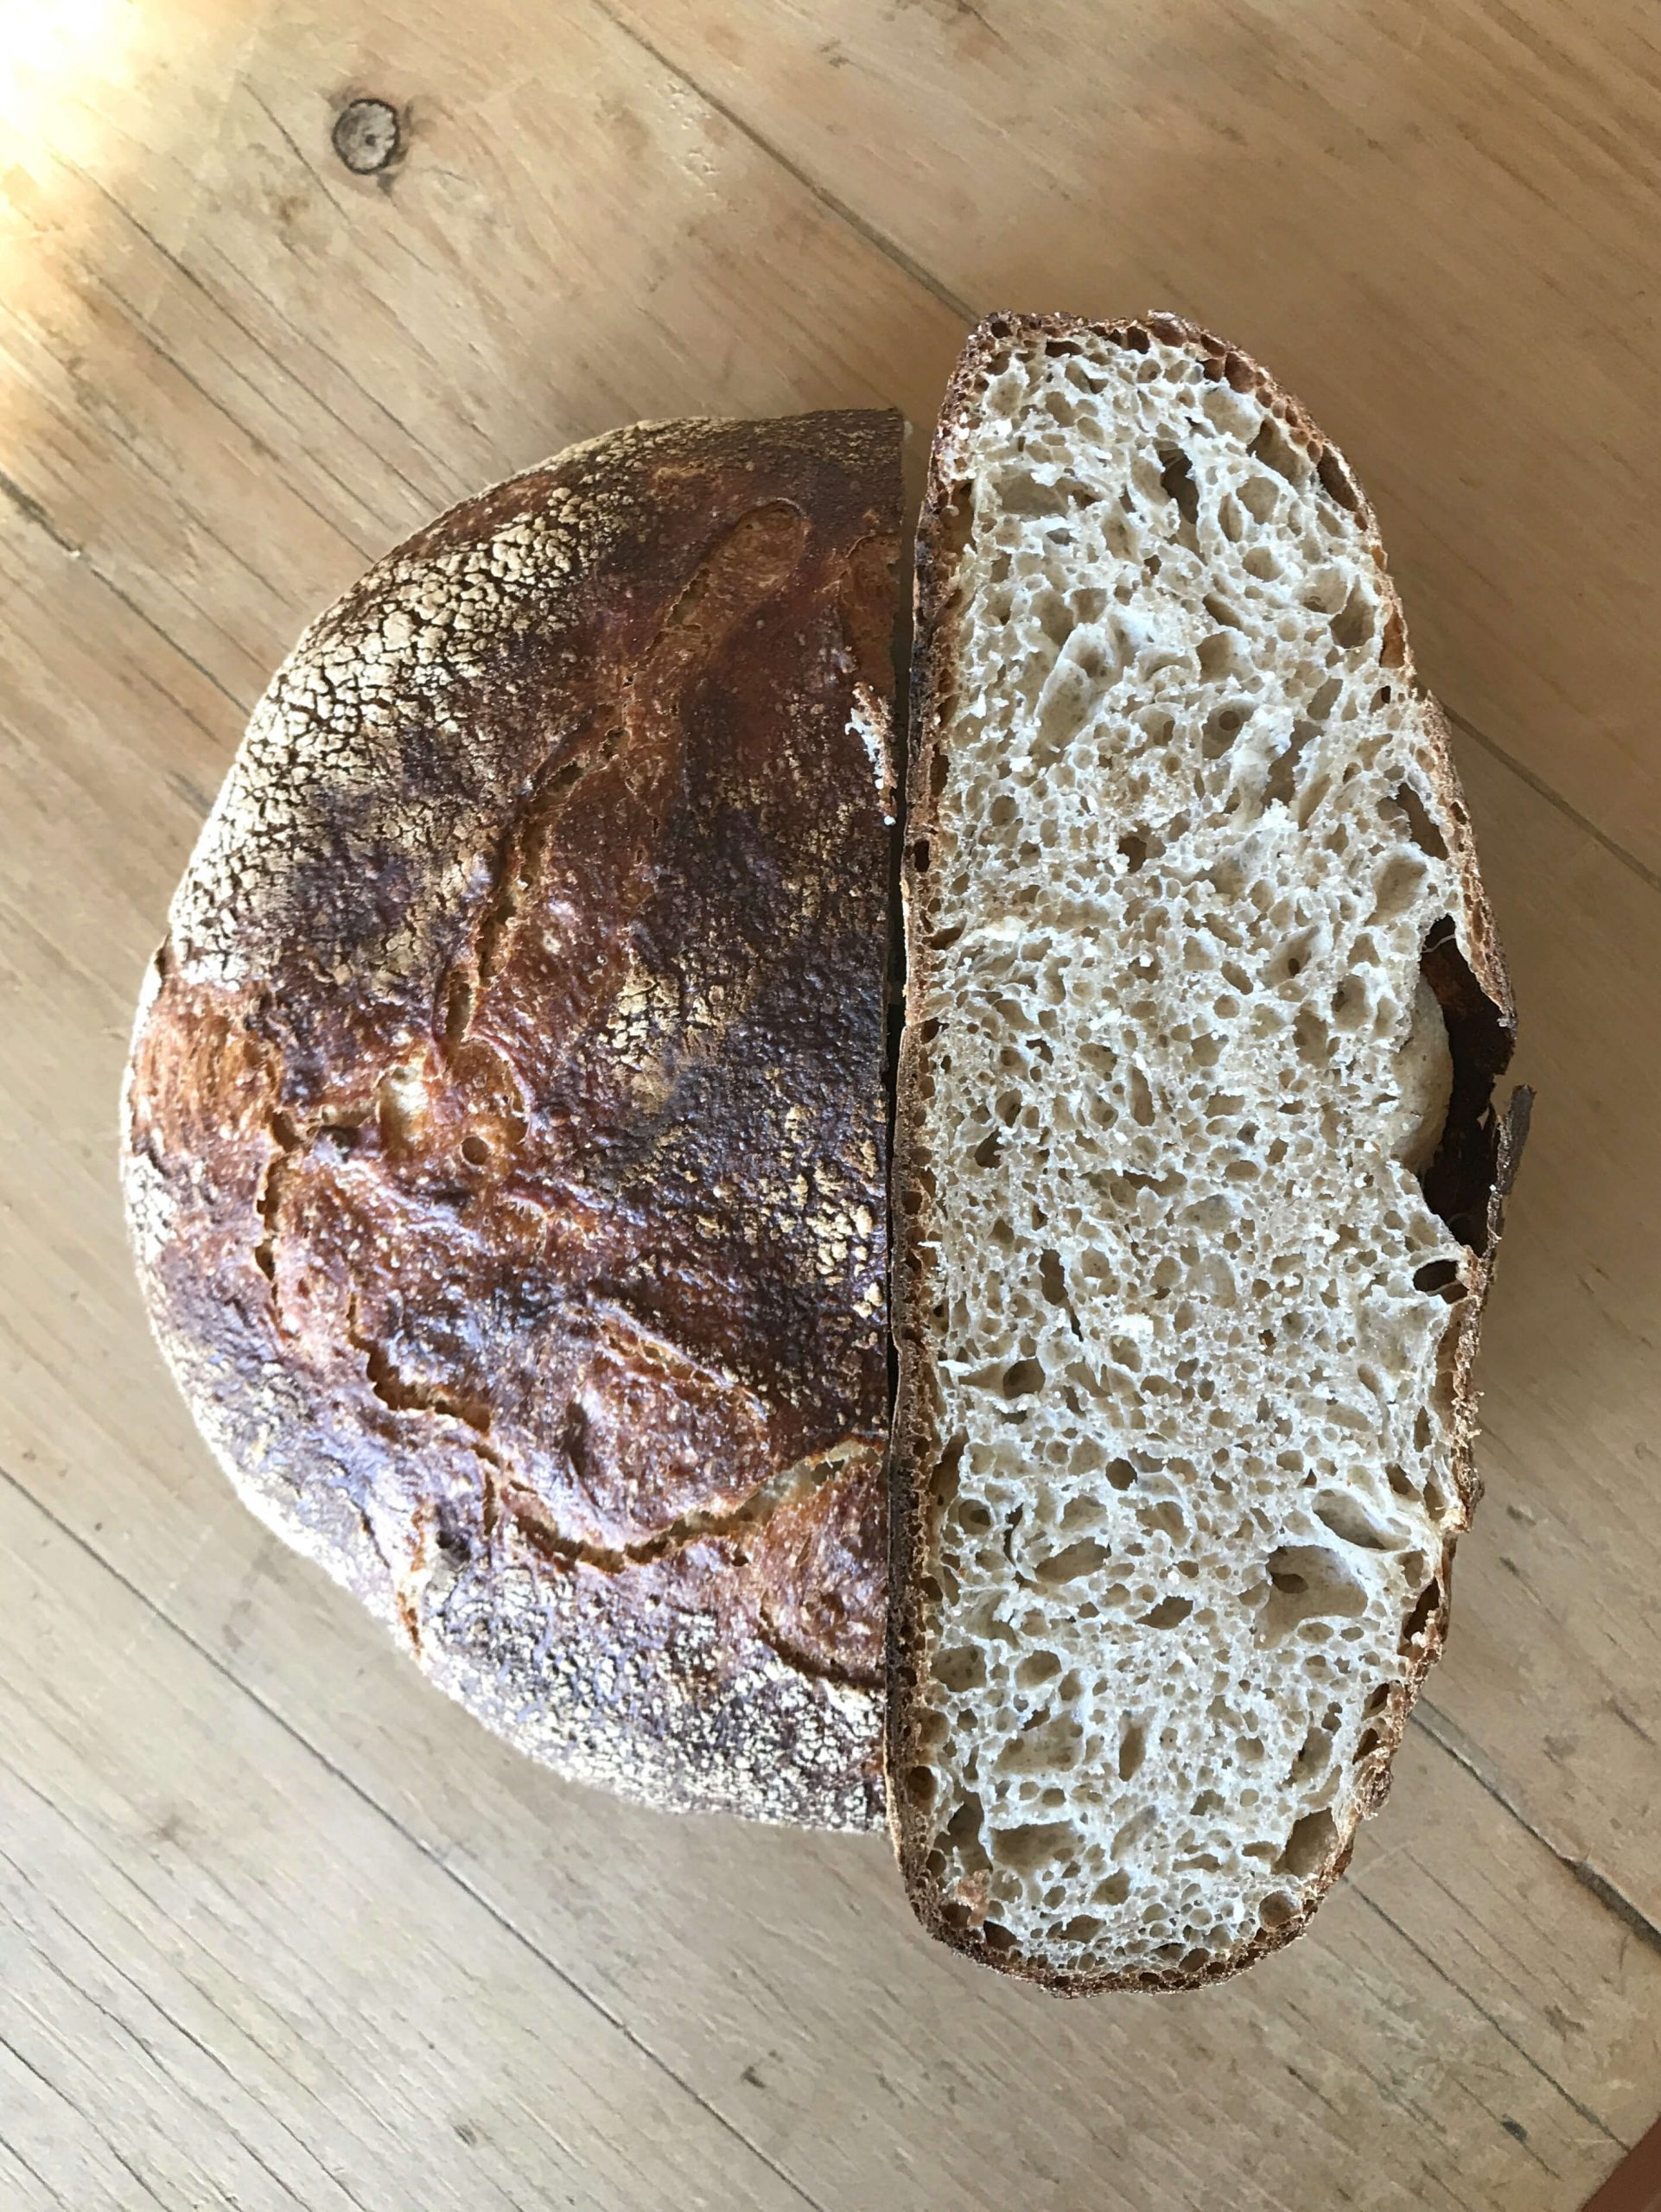 Experimental No Knead Bread